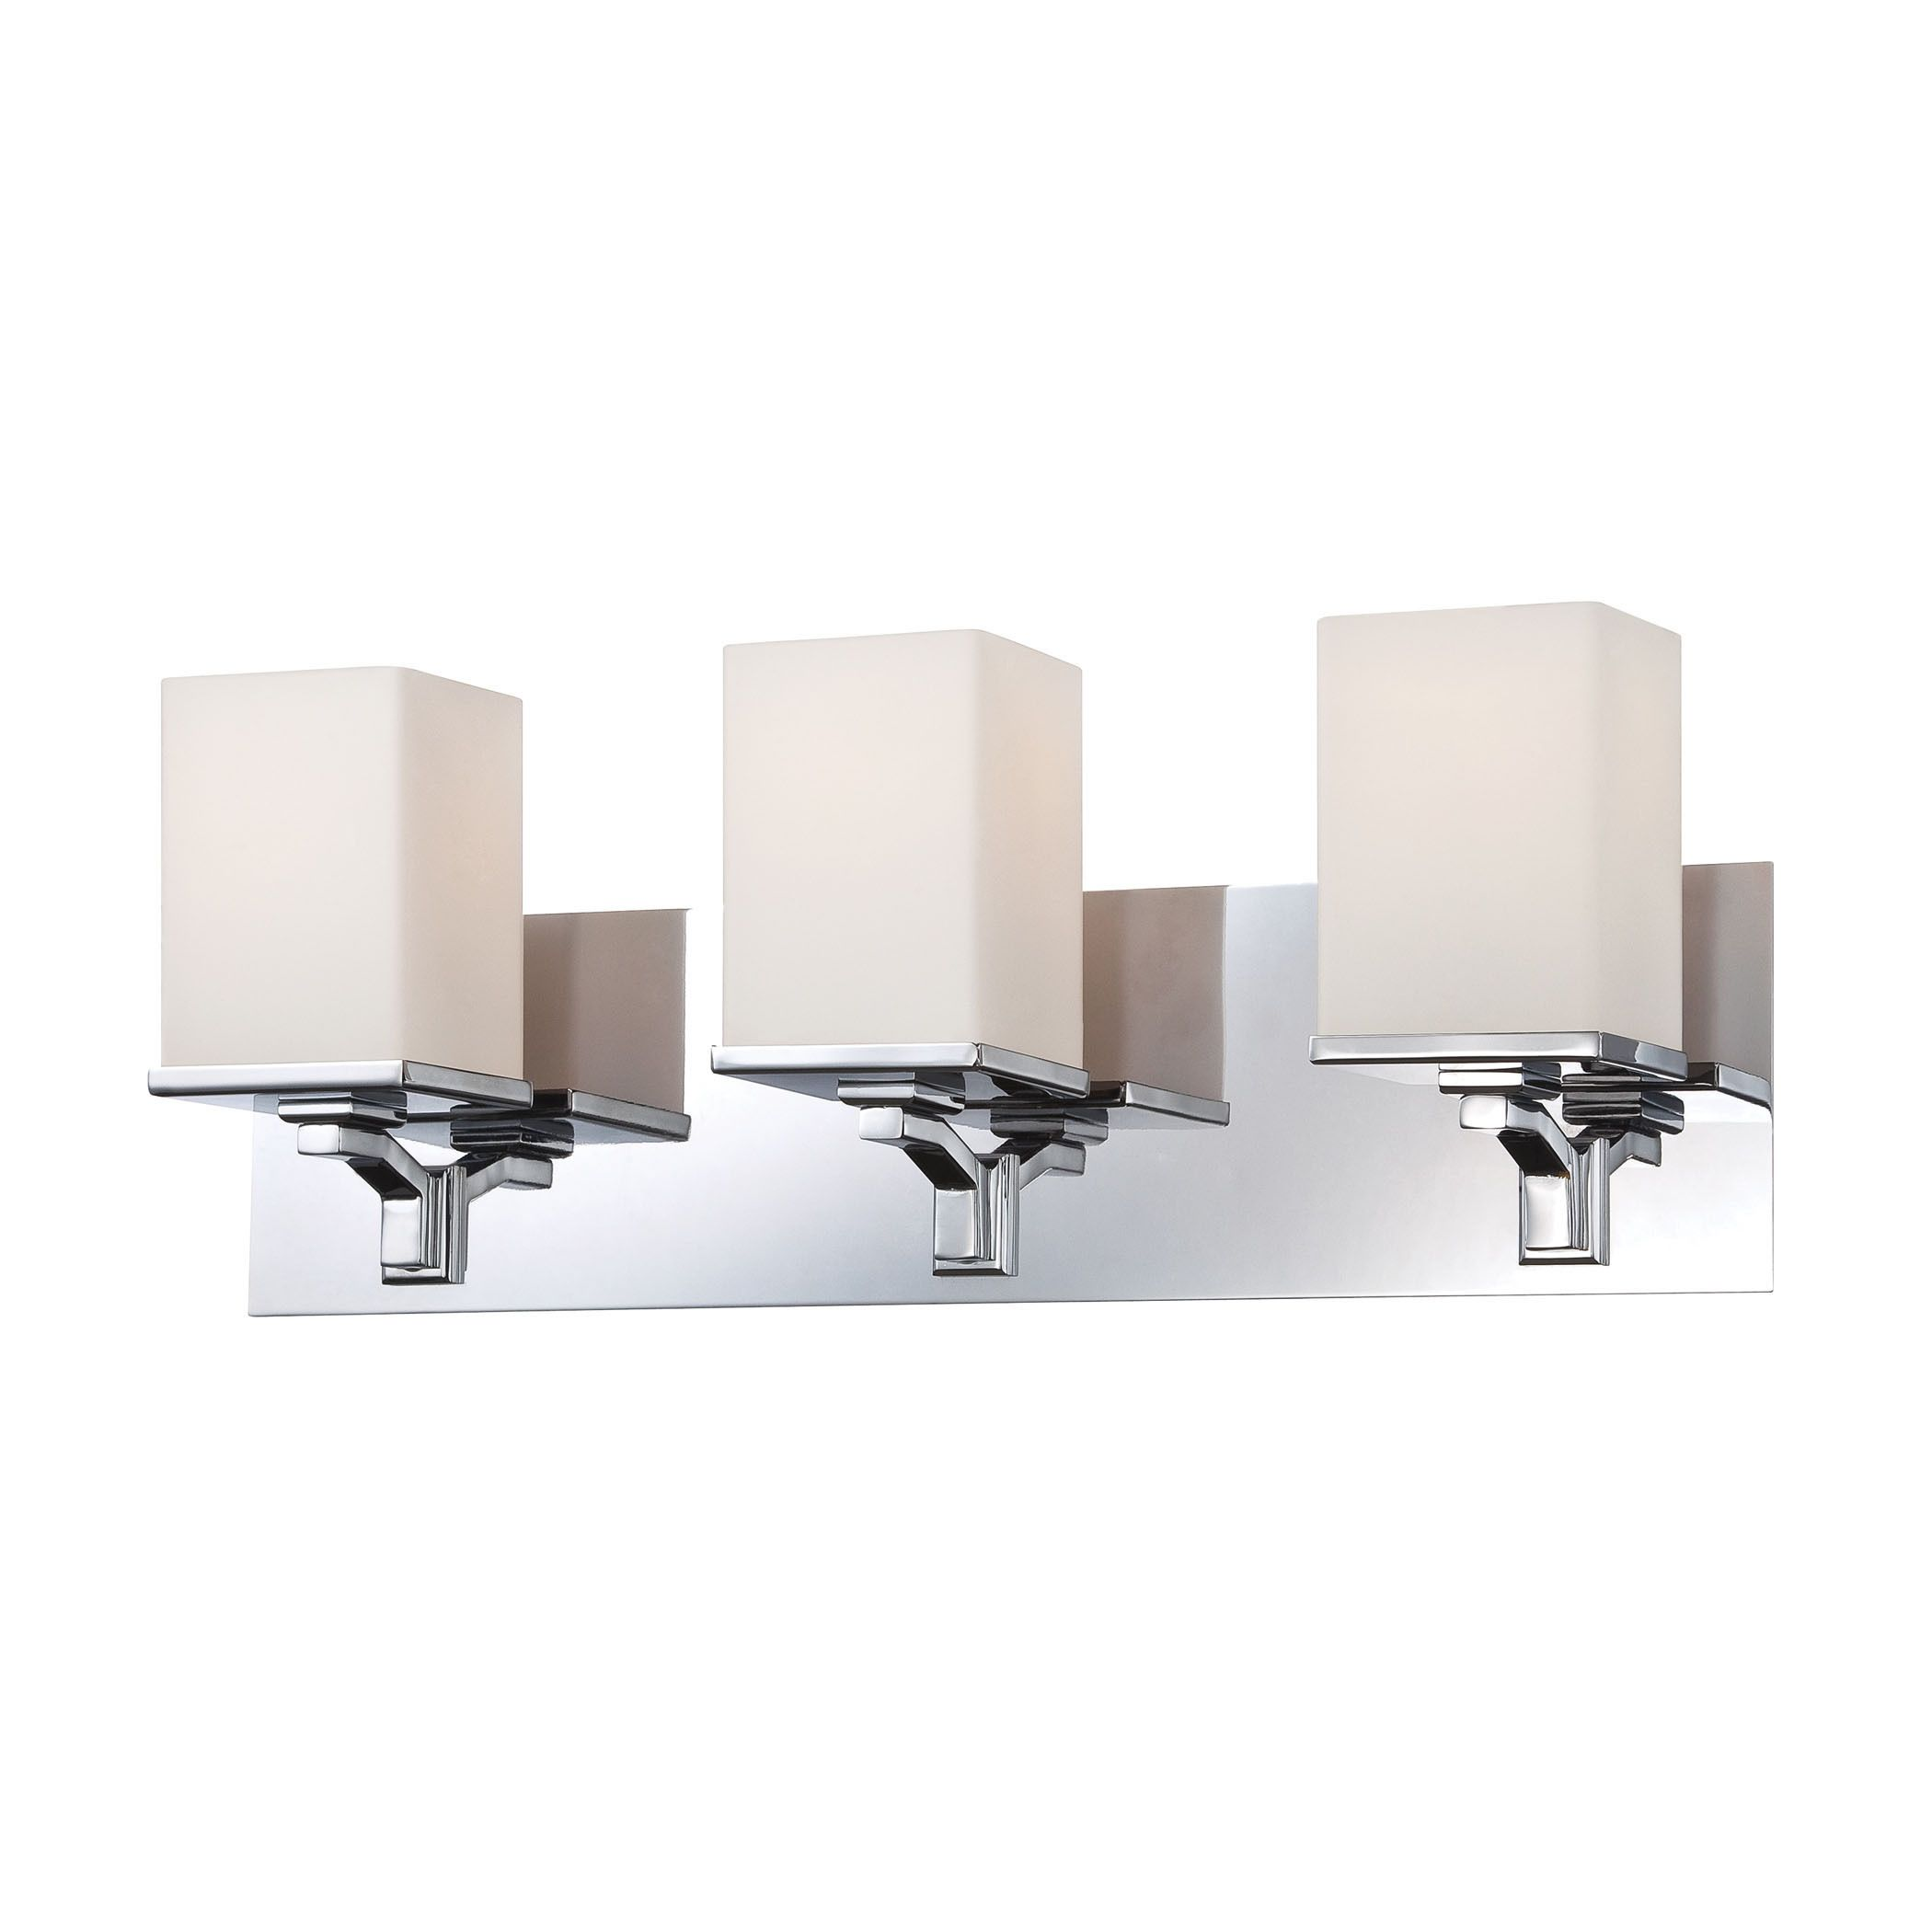 Alico Ramp 3-light Vanity with Chrome and White Opal Glass (White Opal)